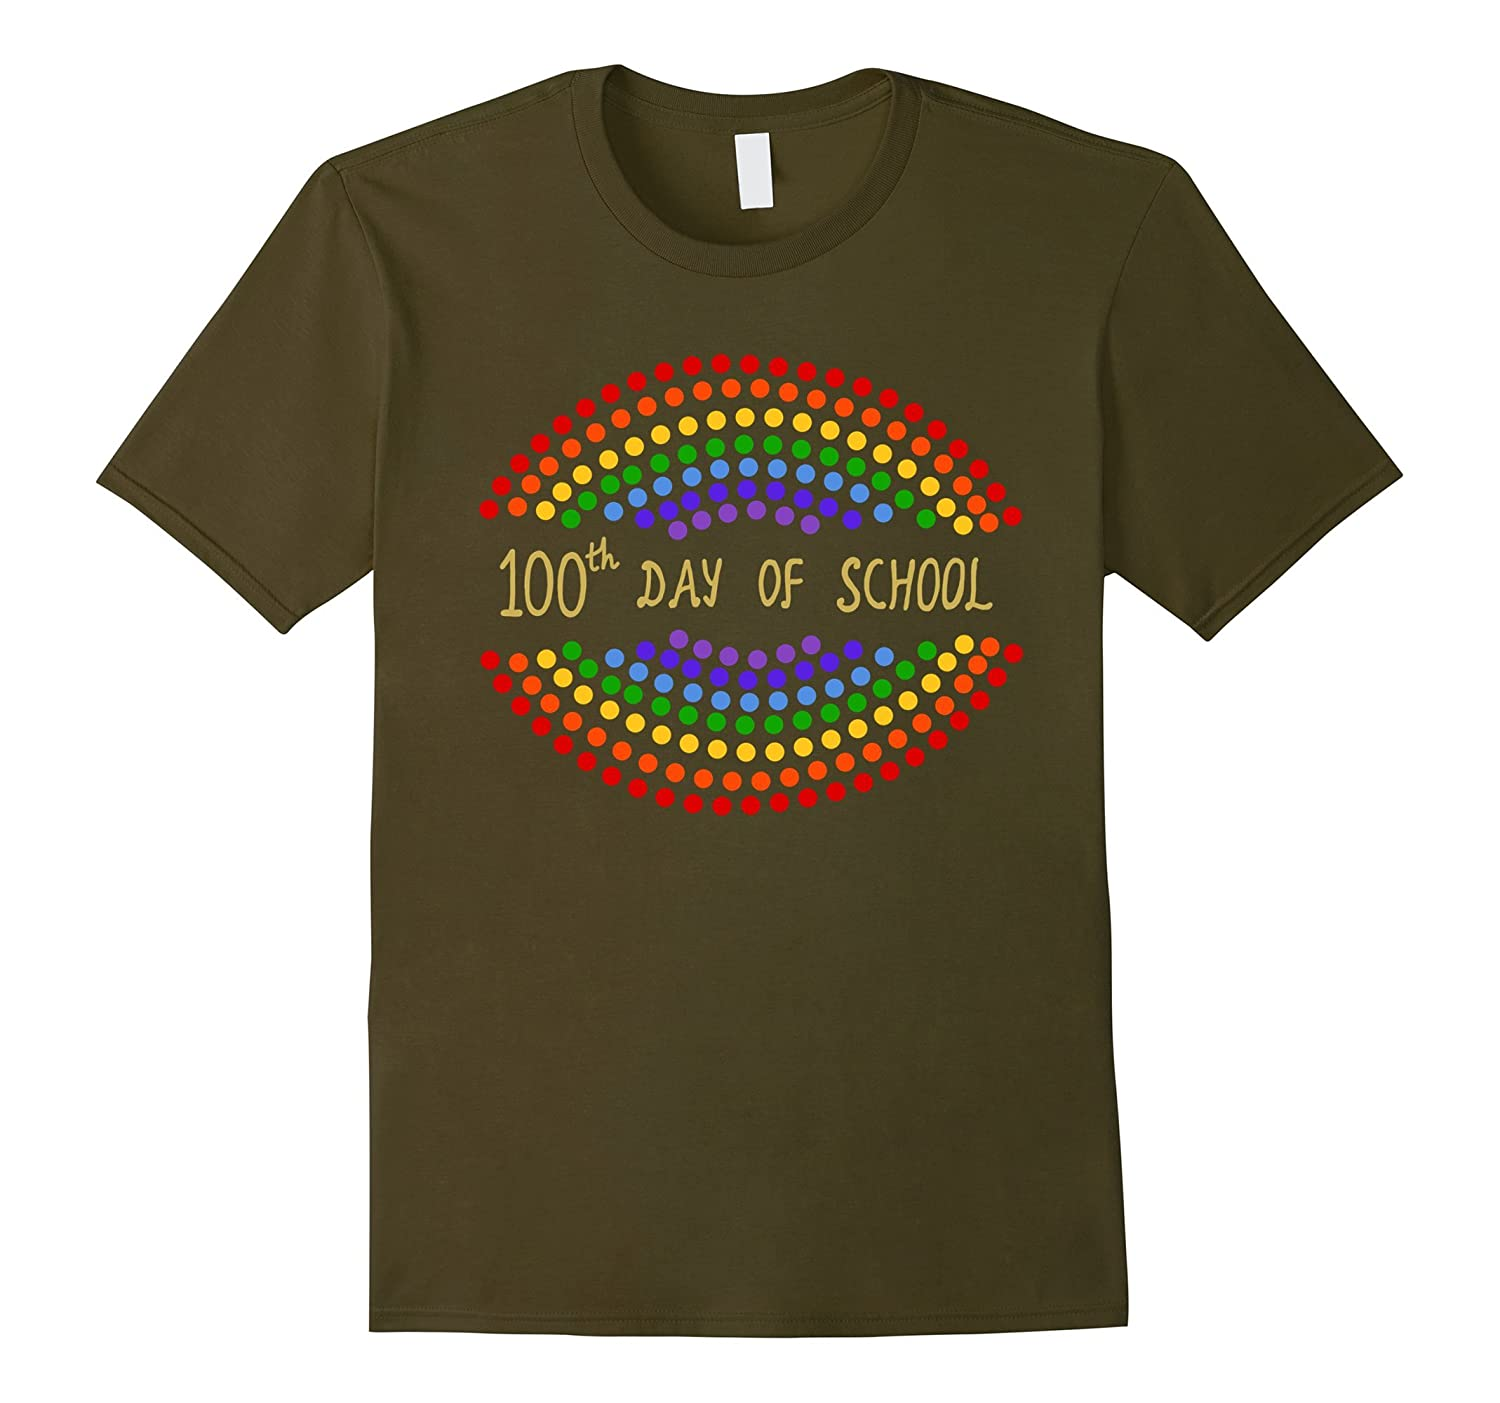 100th Day of School T-Shirt for Teachers and Kids-Rose